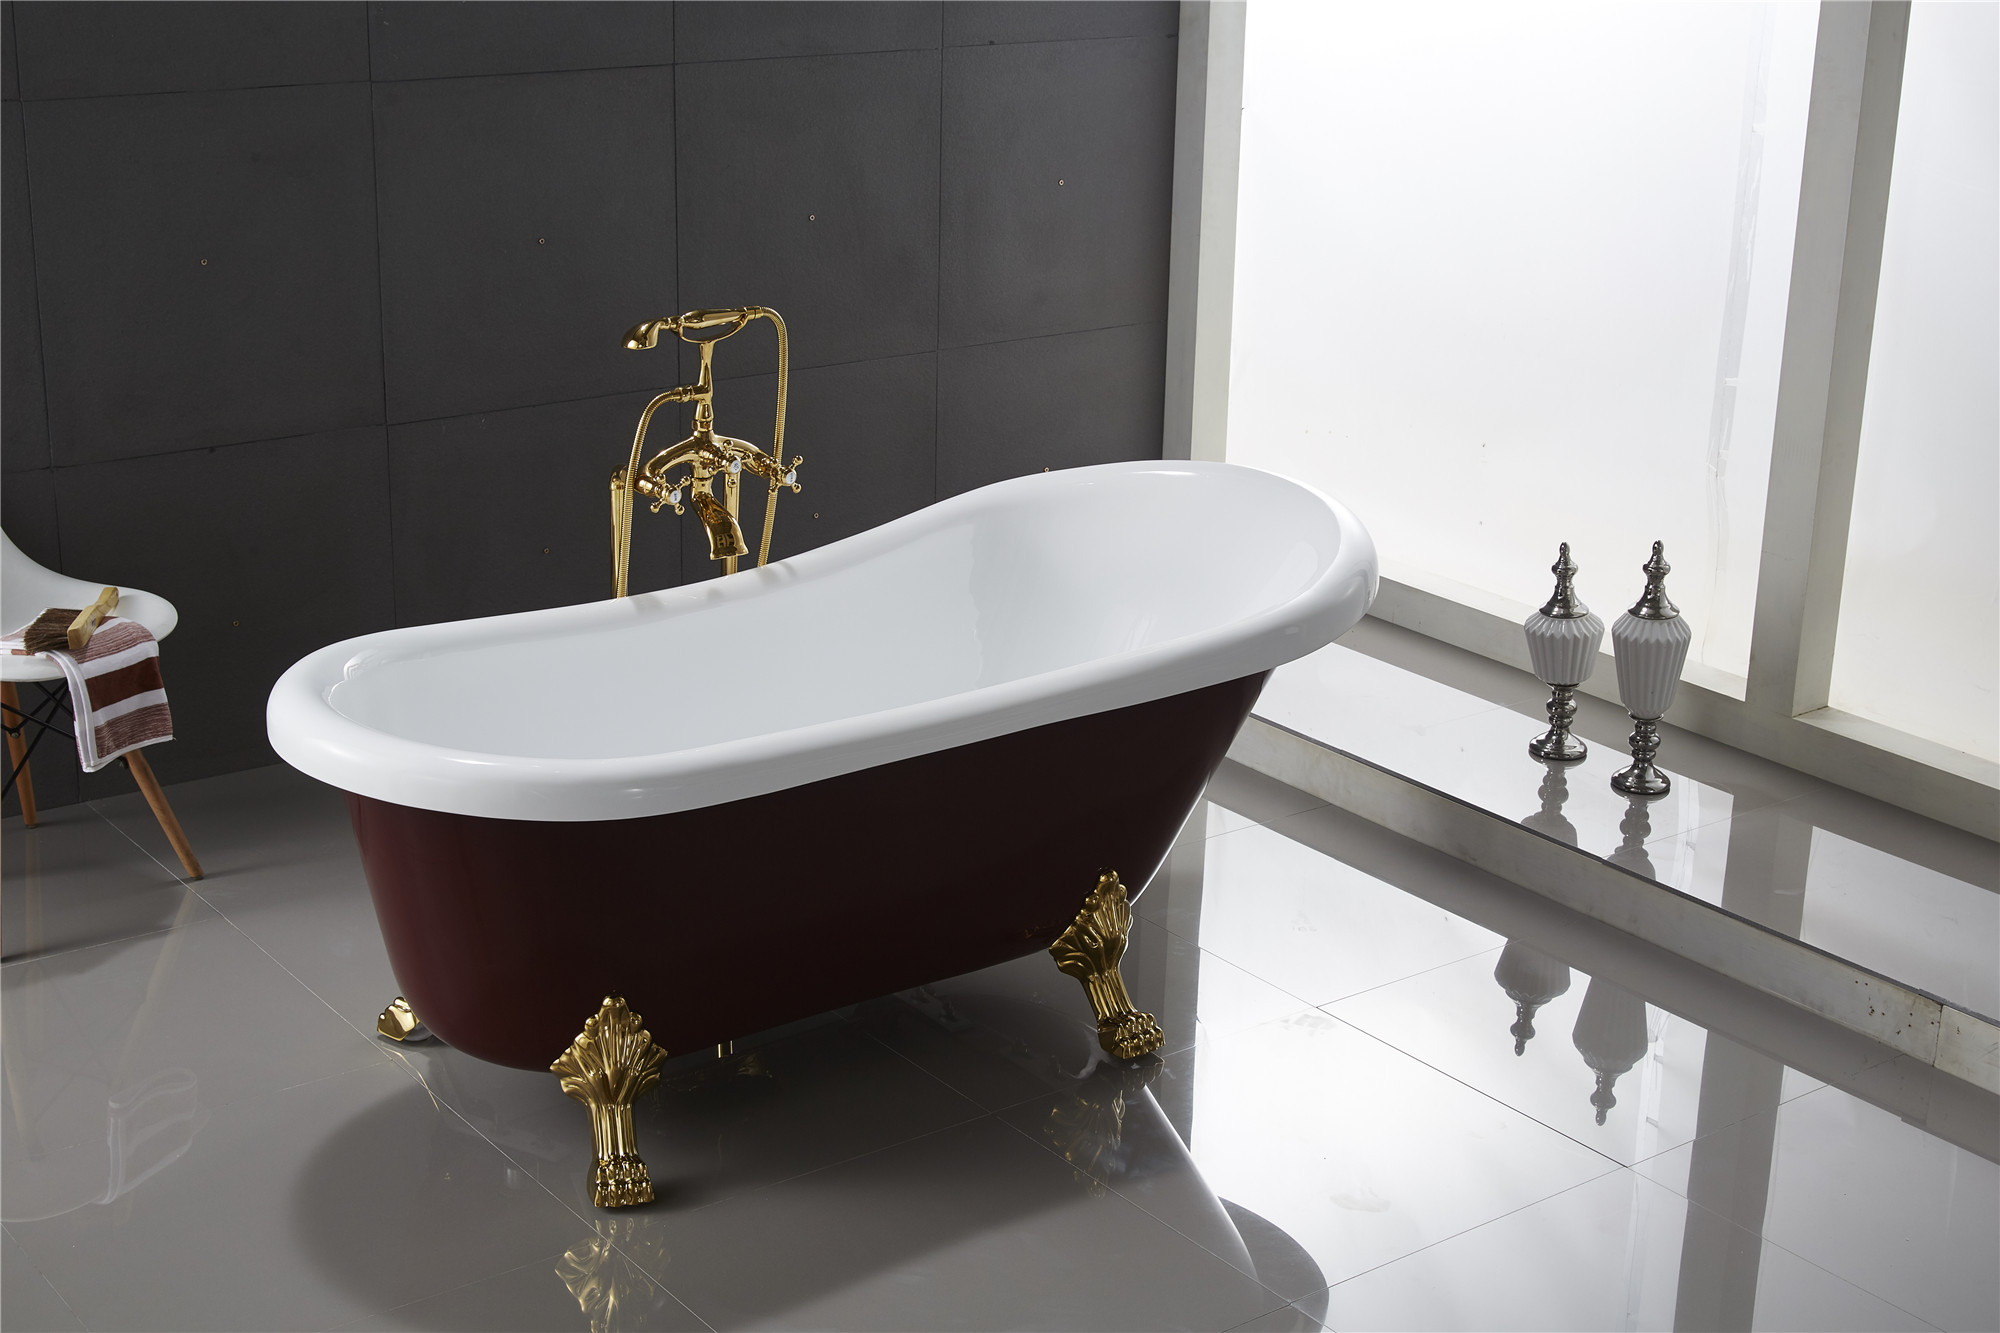 Generous Painting A Bathtub Huge Paint For Bathtub Shaped Paint A Bathtub Tub Refinishers Young Can I Paint My Bathtub Blue Painting Tub